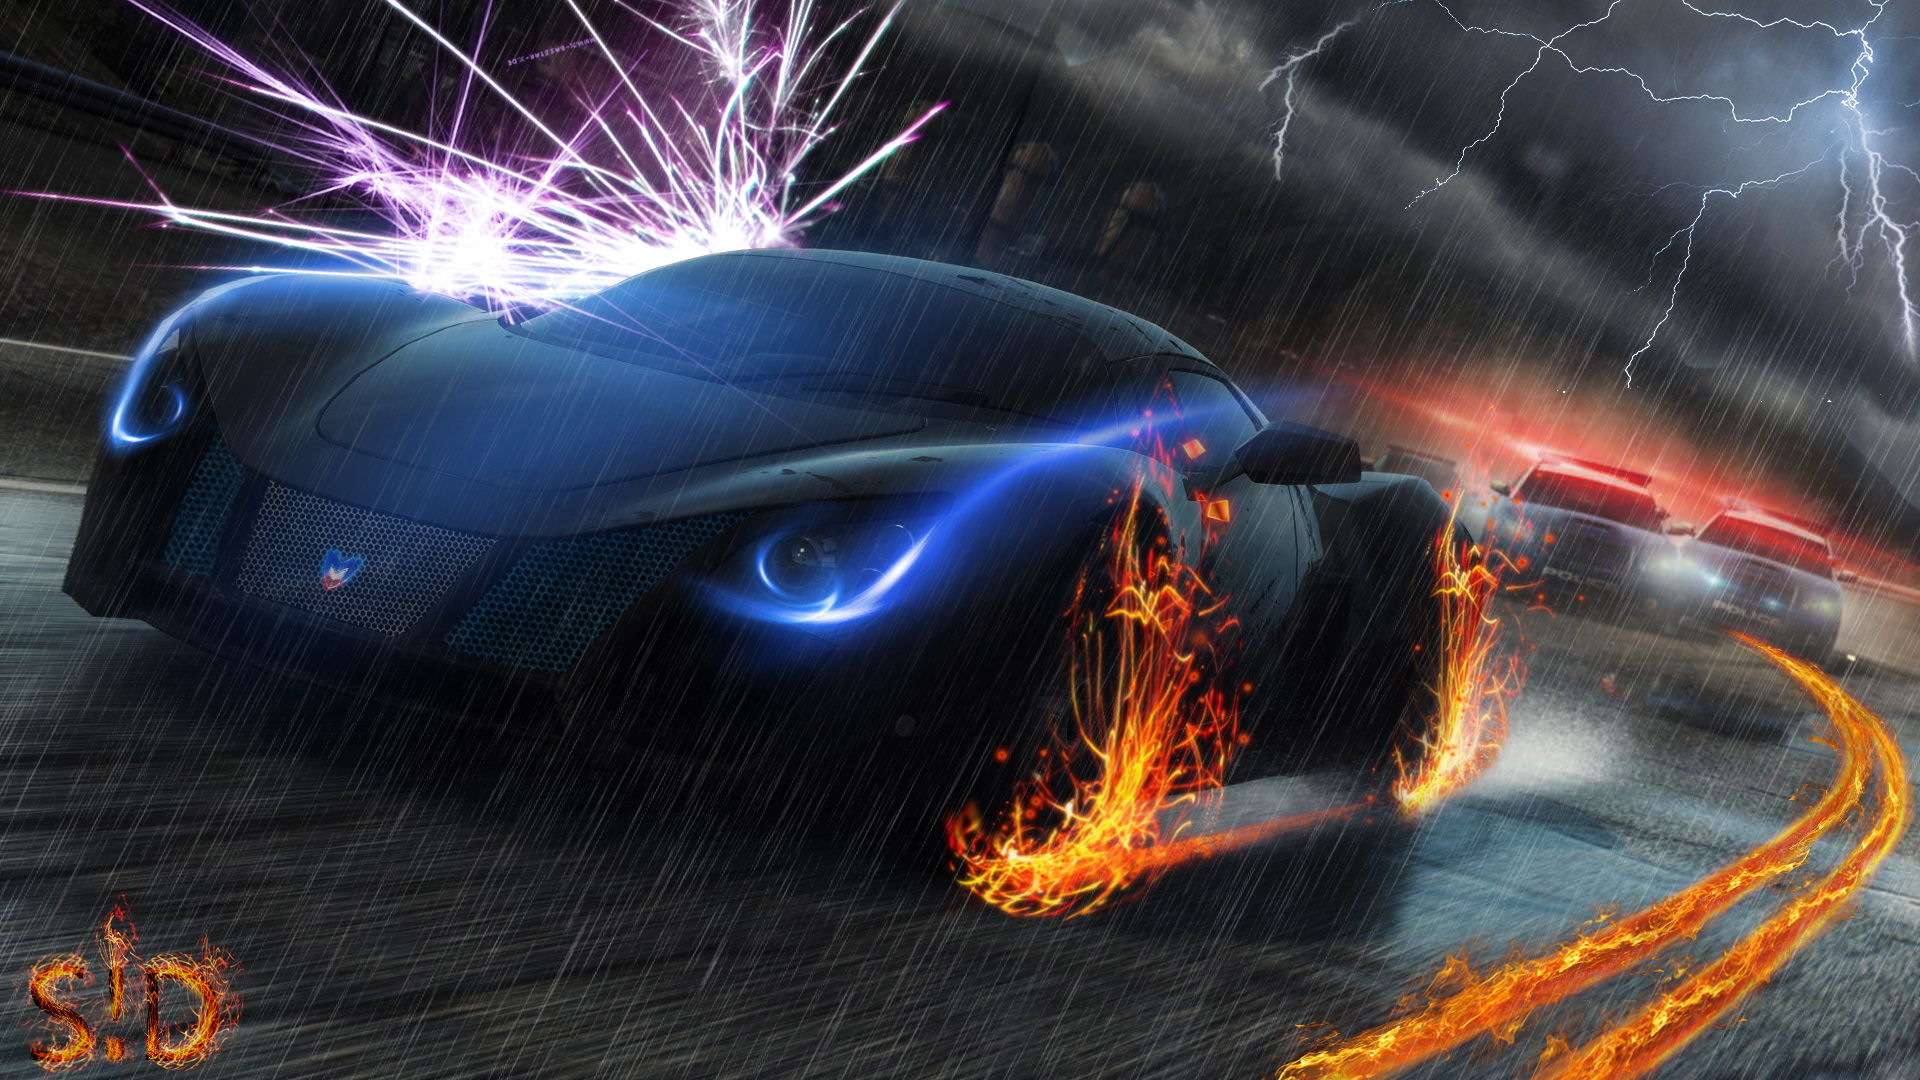 Need for speed most wanted wallpapers pictures images - Speed wallpaper ...